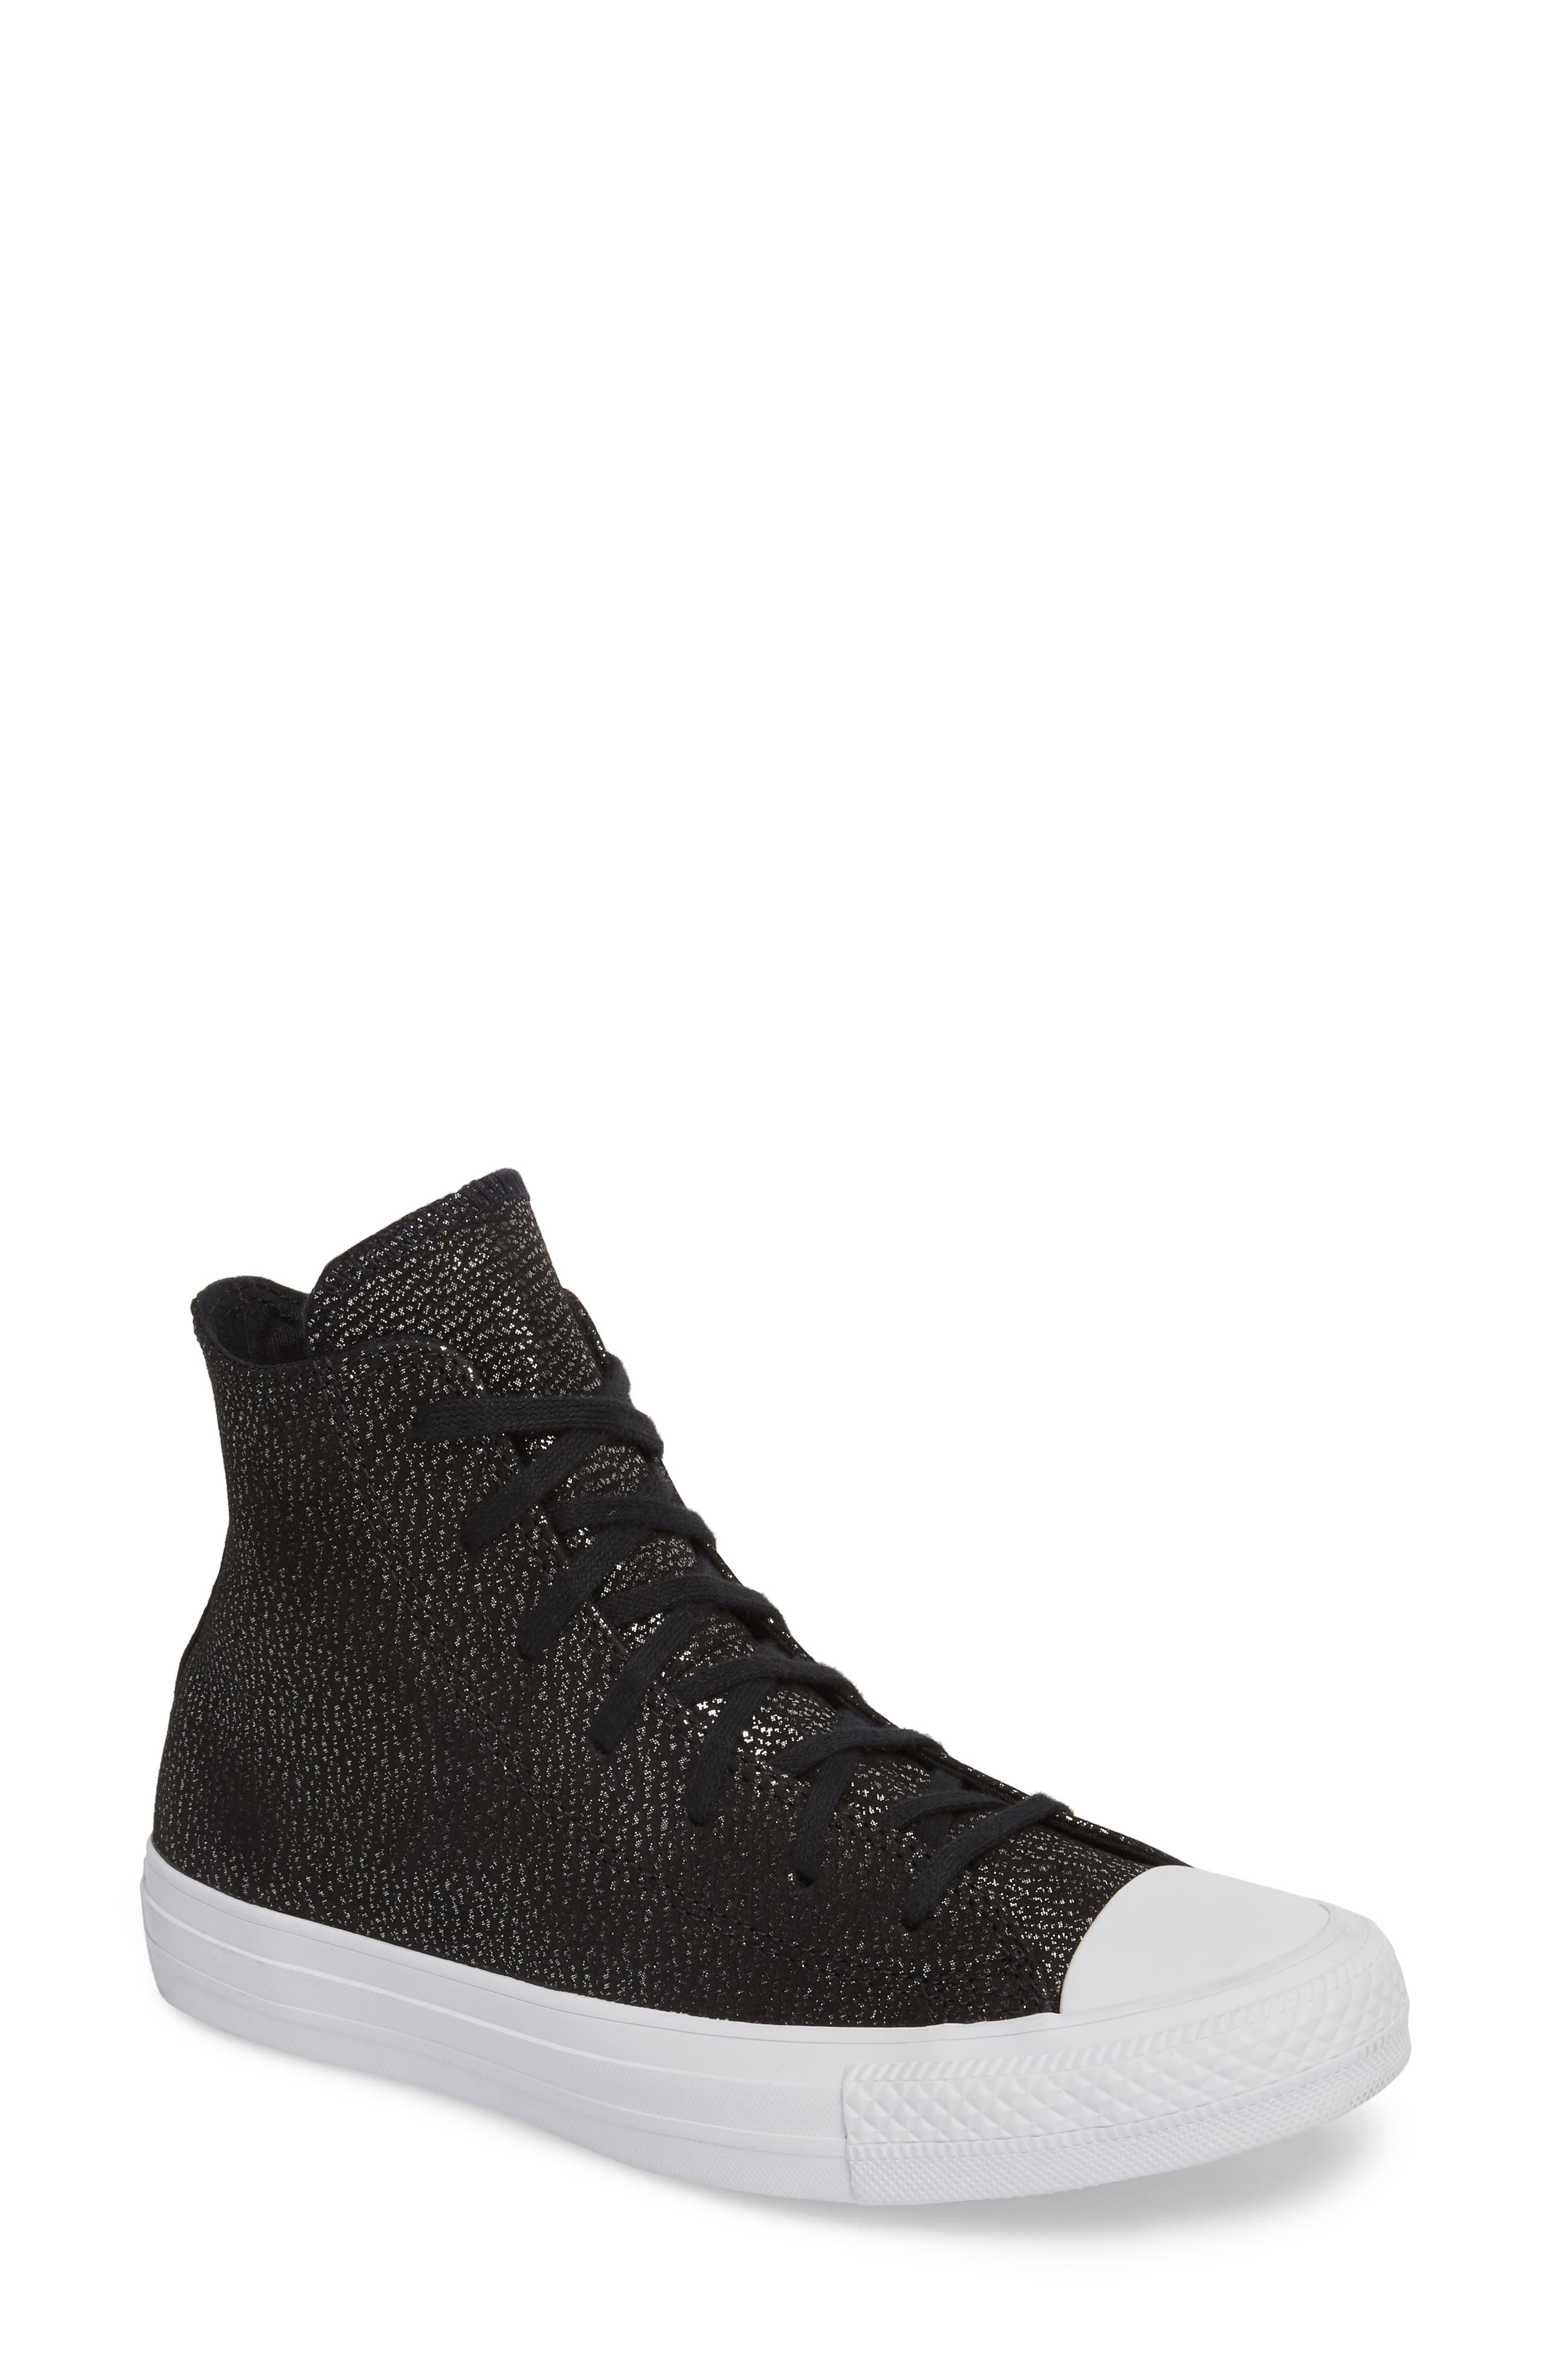 Chuck Taylor<sup>®</sup> All Star<sup>®</sup> Tipped Metallic High Top Sneaker,                         Main,                         color, 001